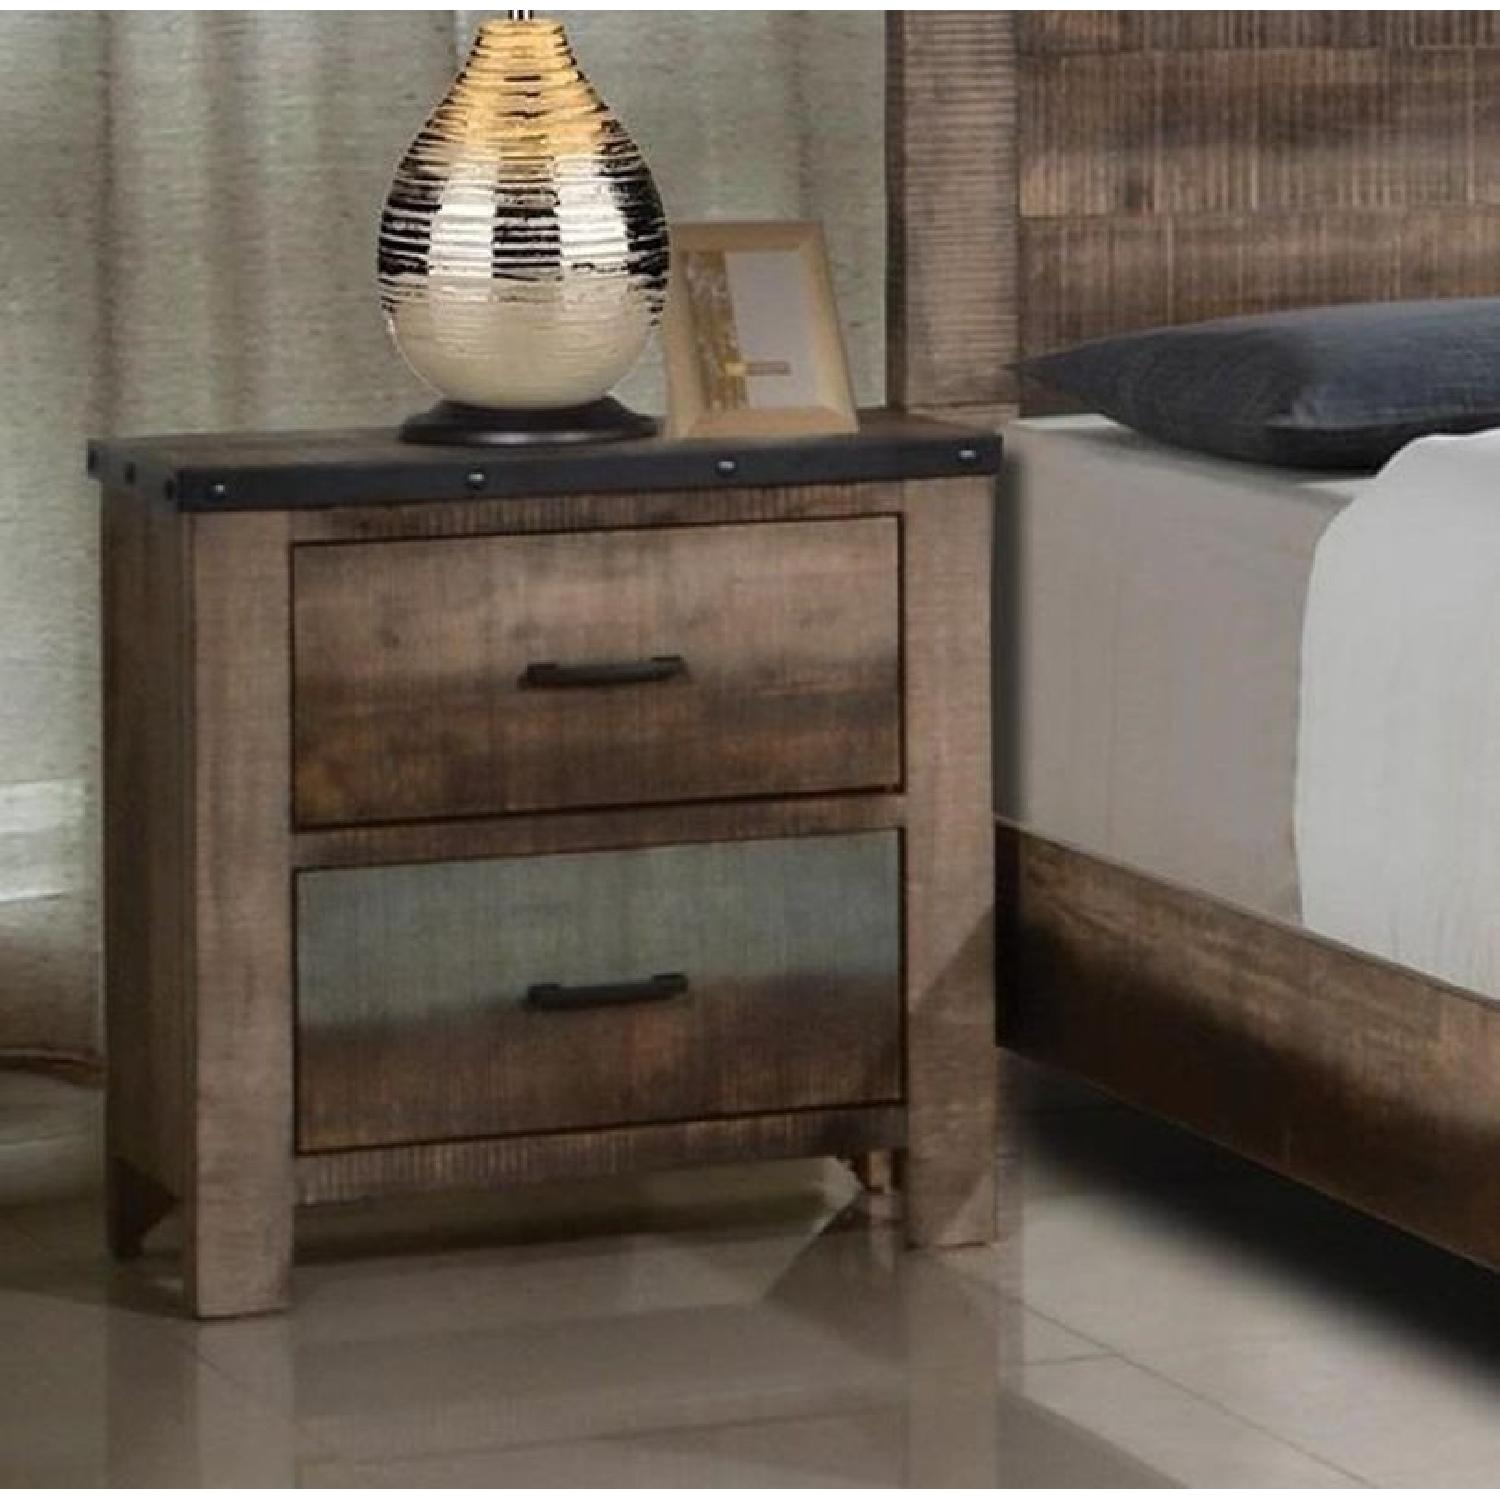 Rustic Style Nightstand in Solid Wood Multi-Tonal Finish - image-1